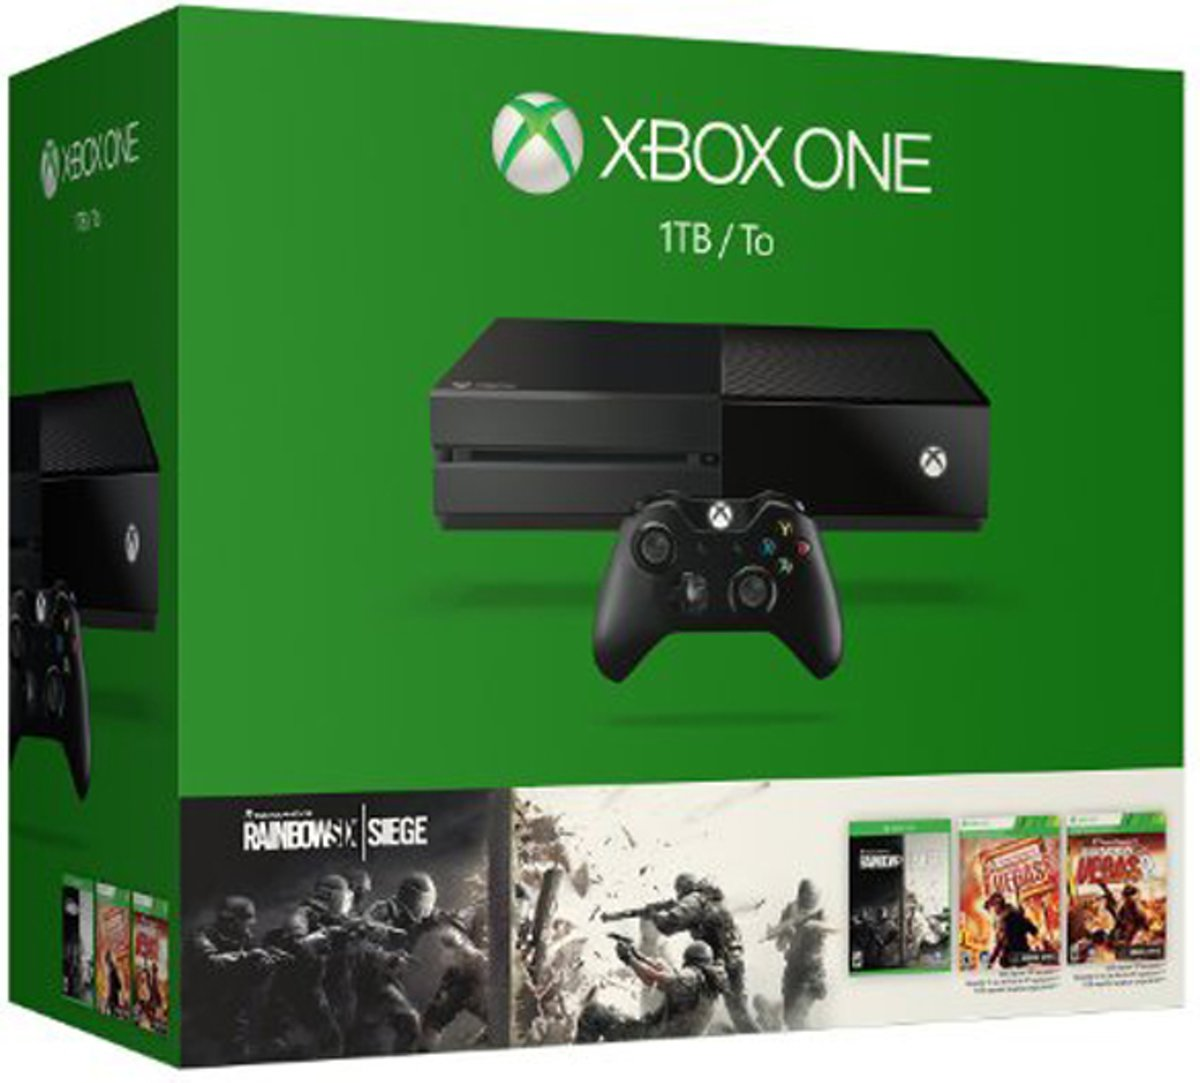 Xbox One 1TB USK 18 incl. Rainbow Six Siege & Vegas